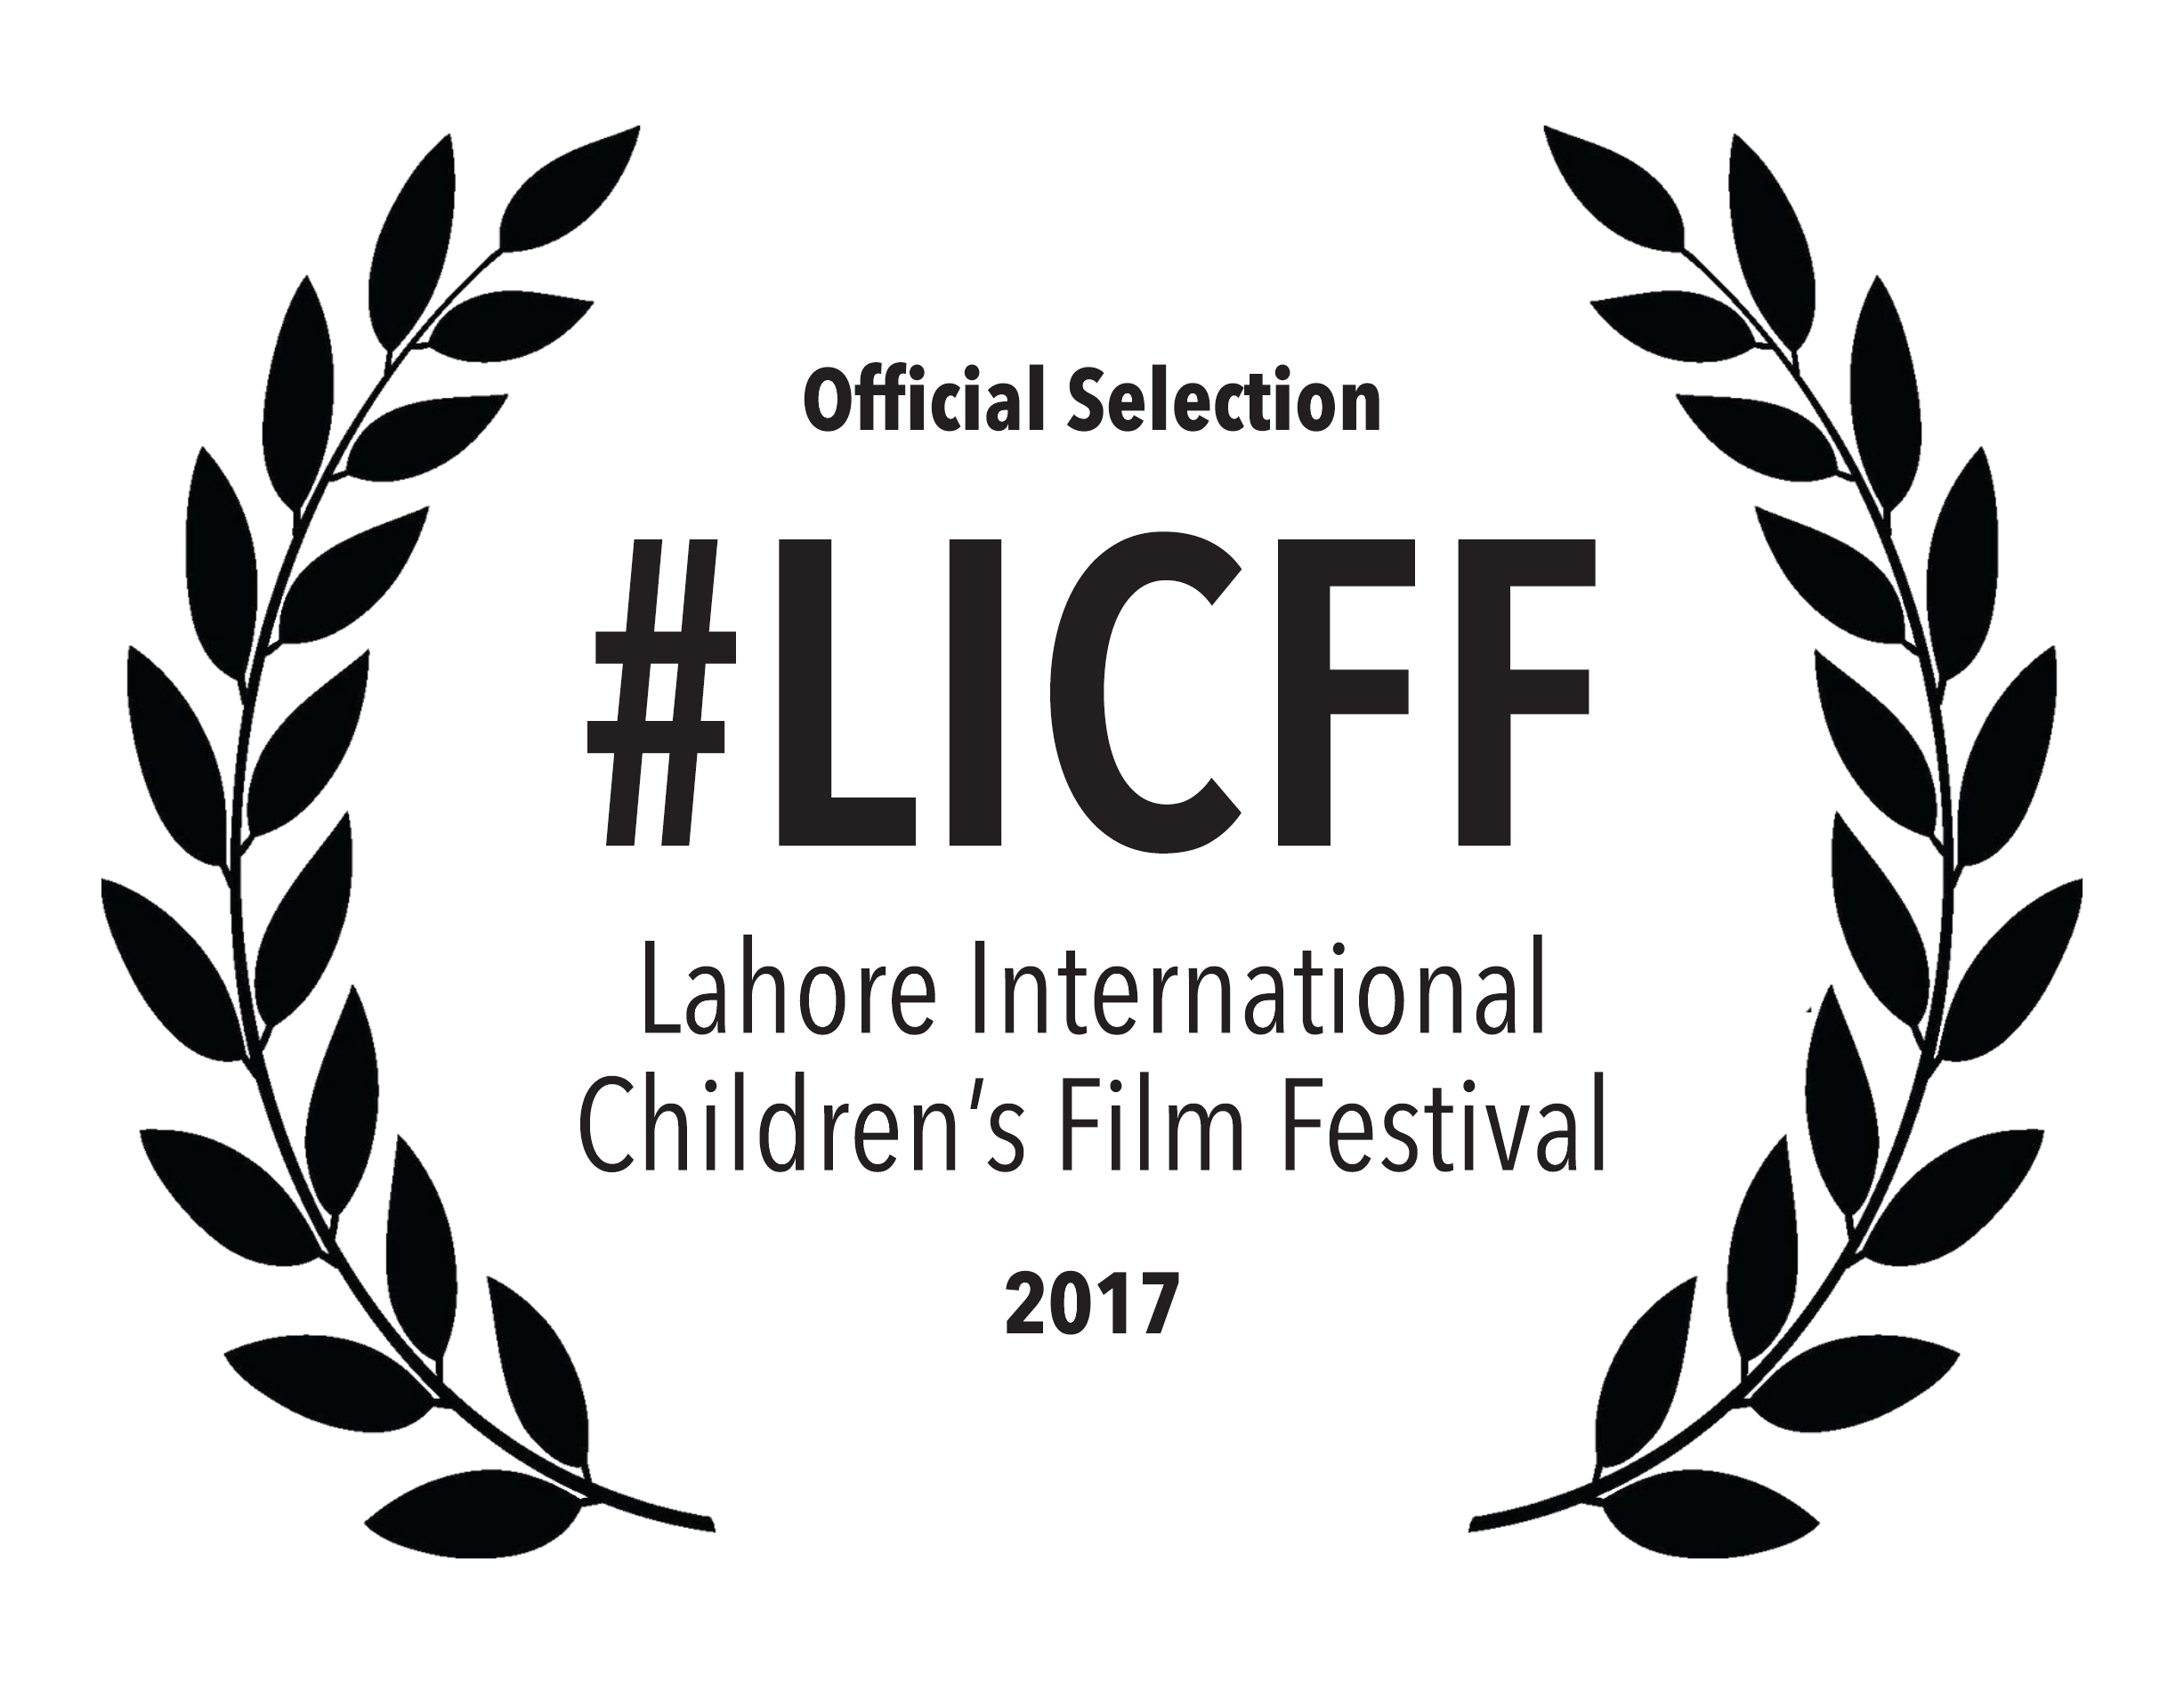 c/LICFF Official Selection